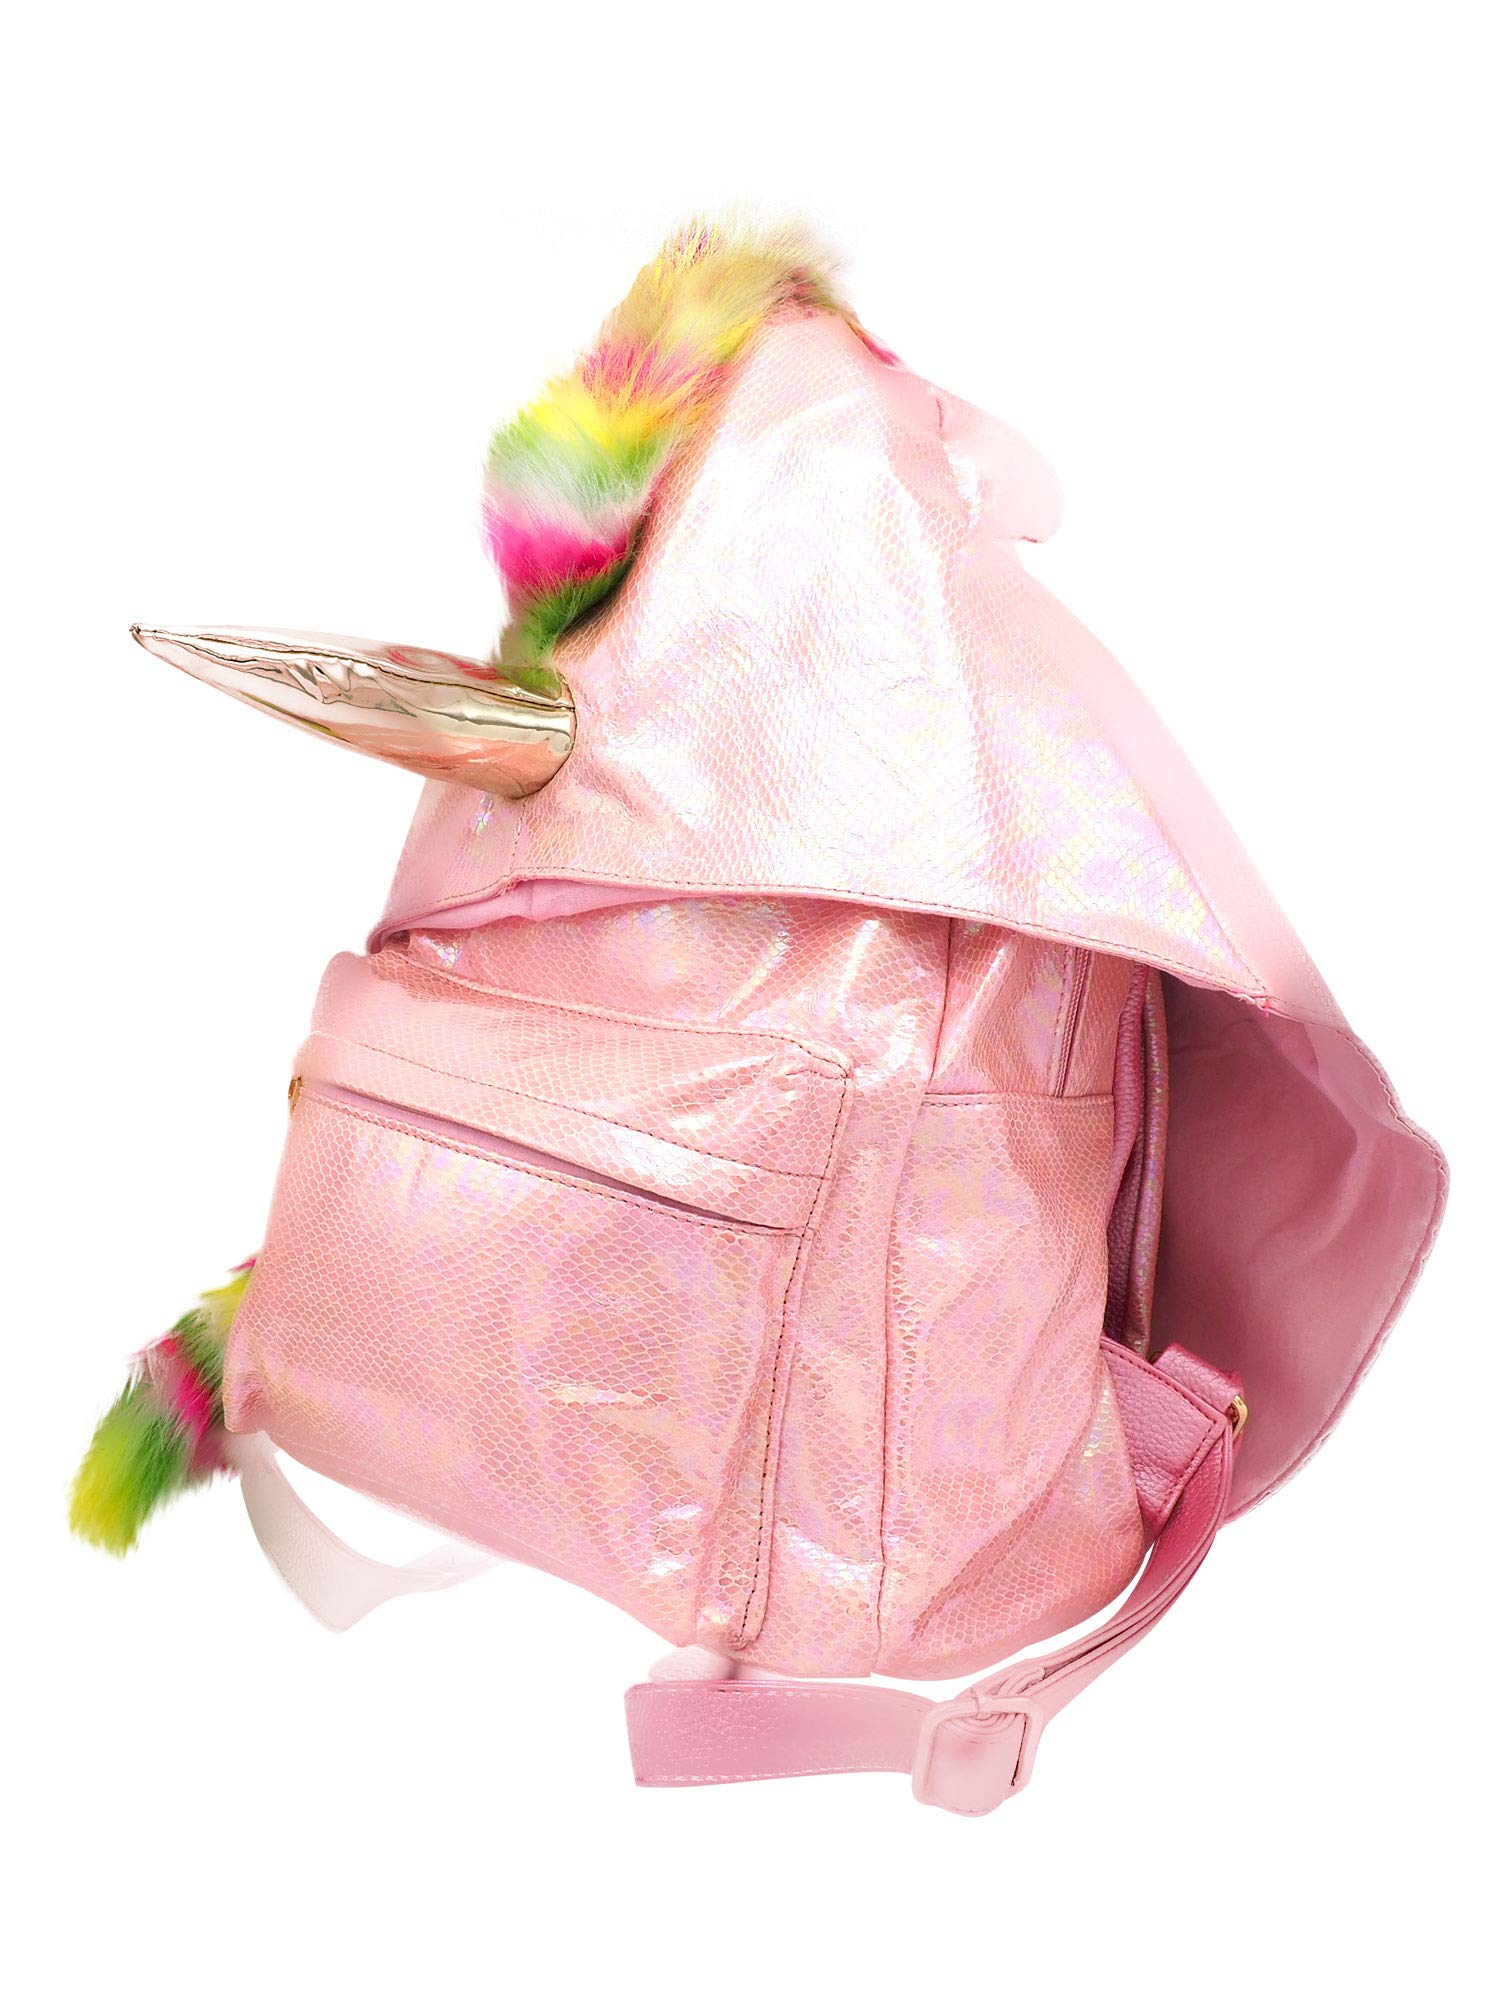 Sleekly Pink Unicorn Backpack, Back-to-School Bags for Her, Bag with Cute Unicorn Hood by Sleekly